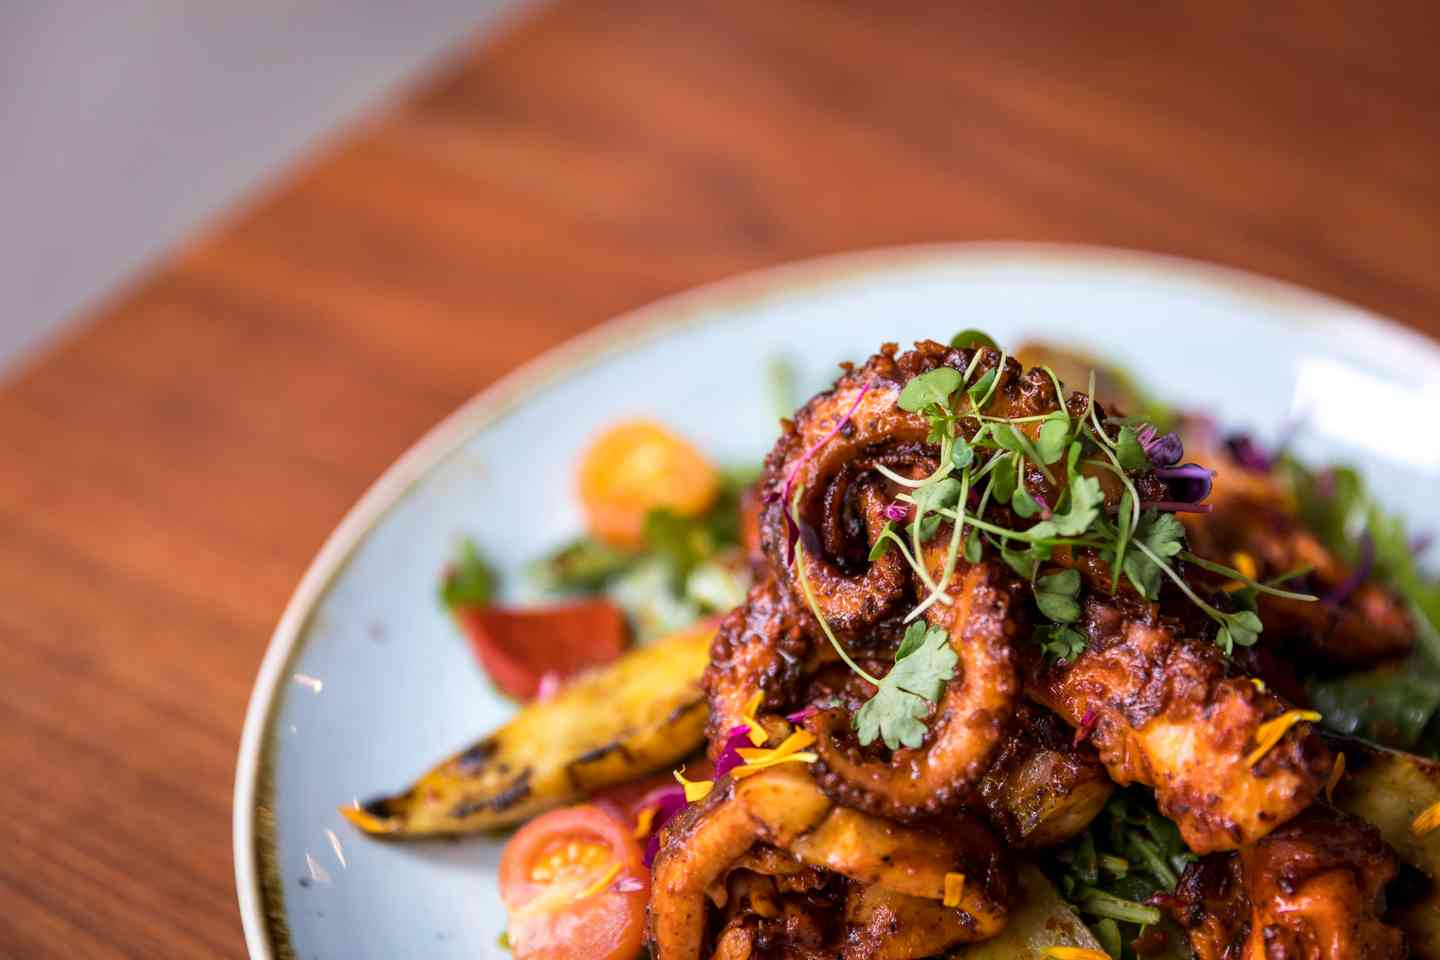 WOOD - GRILLED OCTOPUS